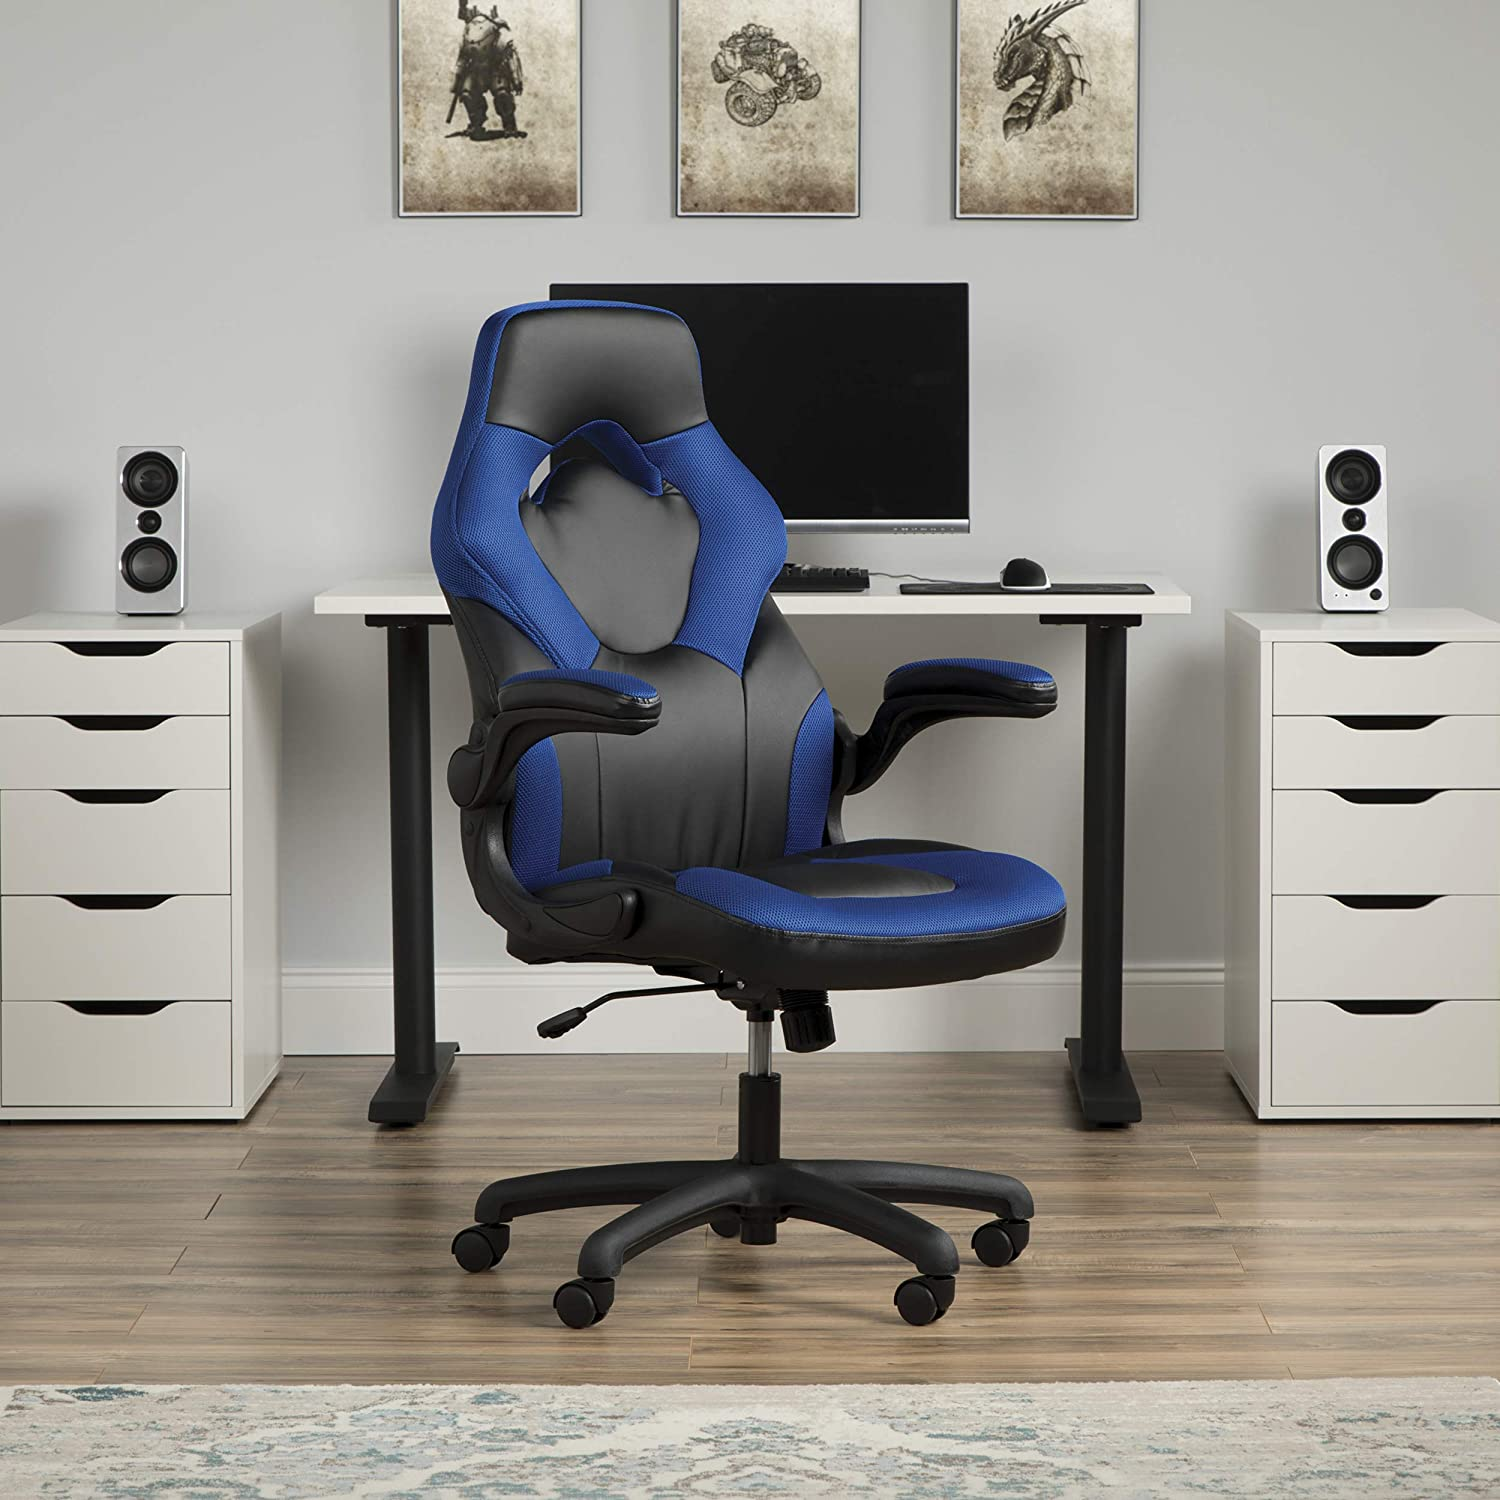 Essentials Racing Style Leather Gaming Chair – Ergonomic Swivel Computer, Office or Gaming Chair, Blue ESS-3085-BLU